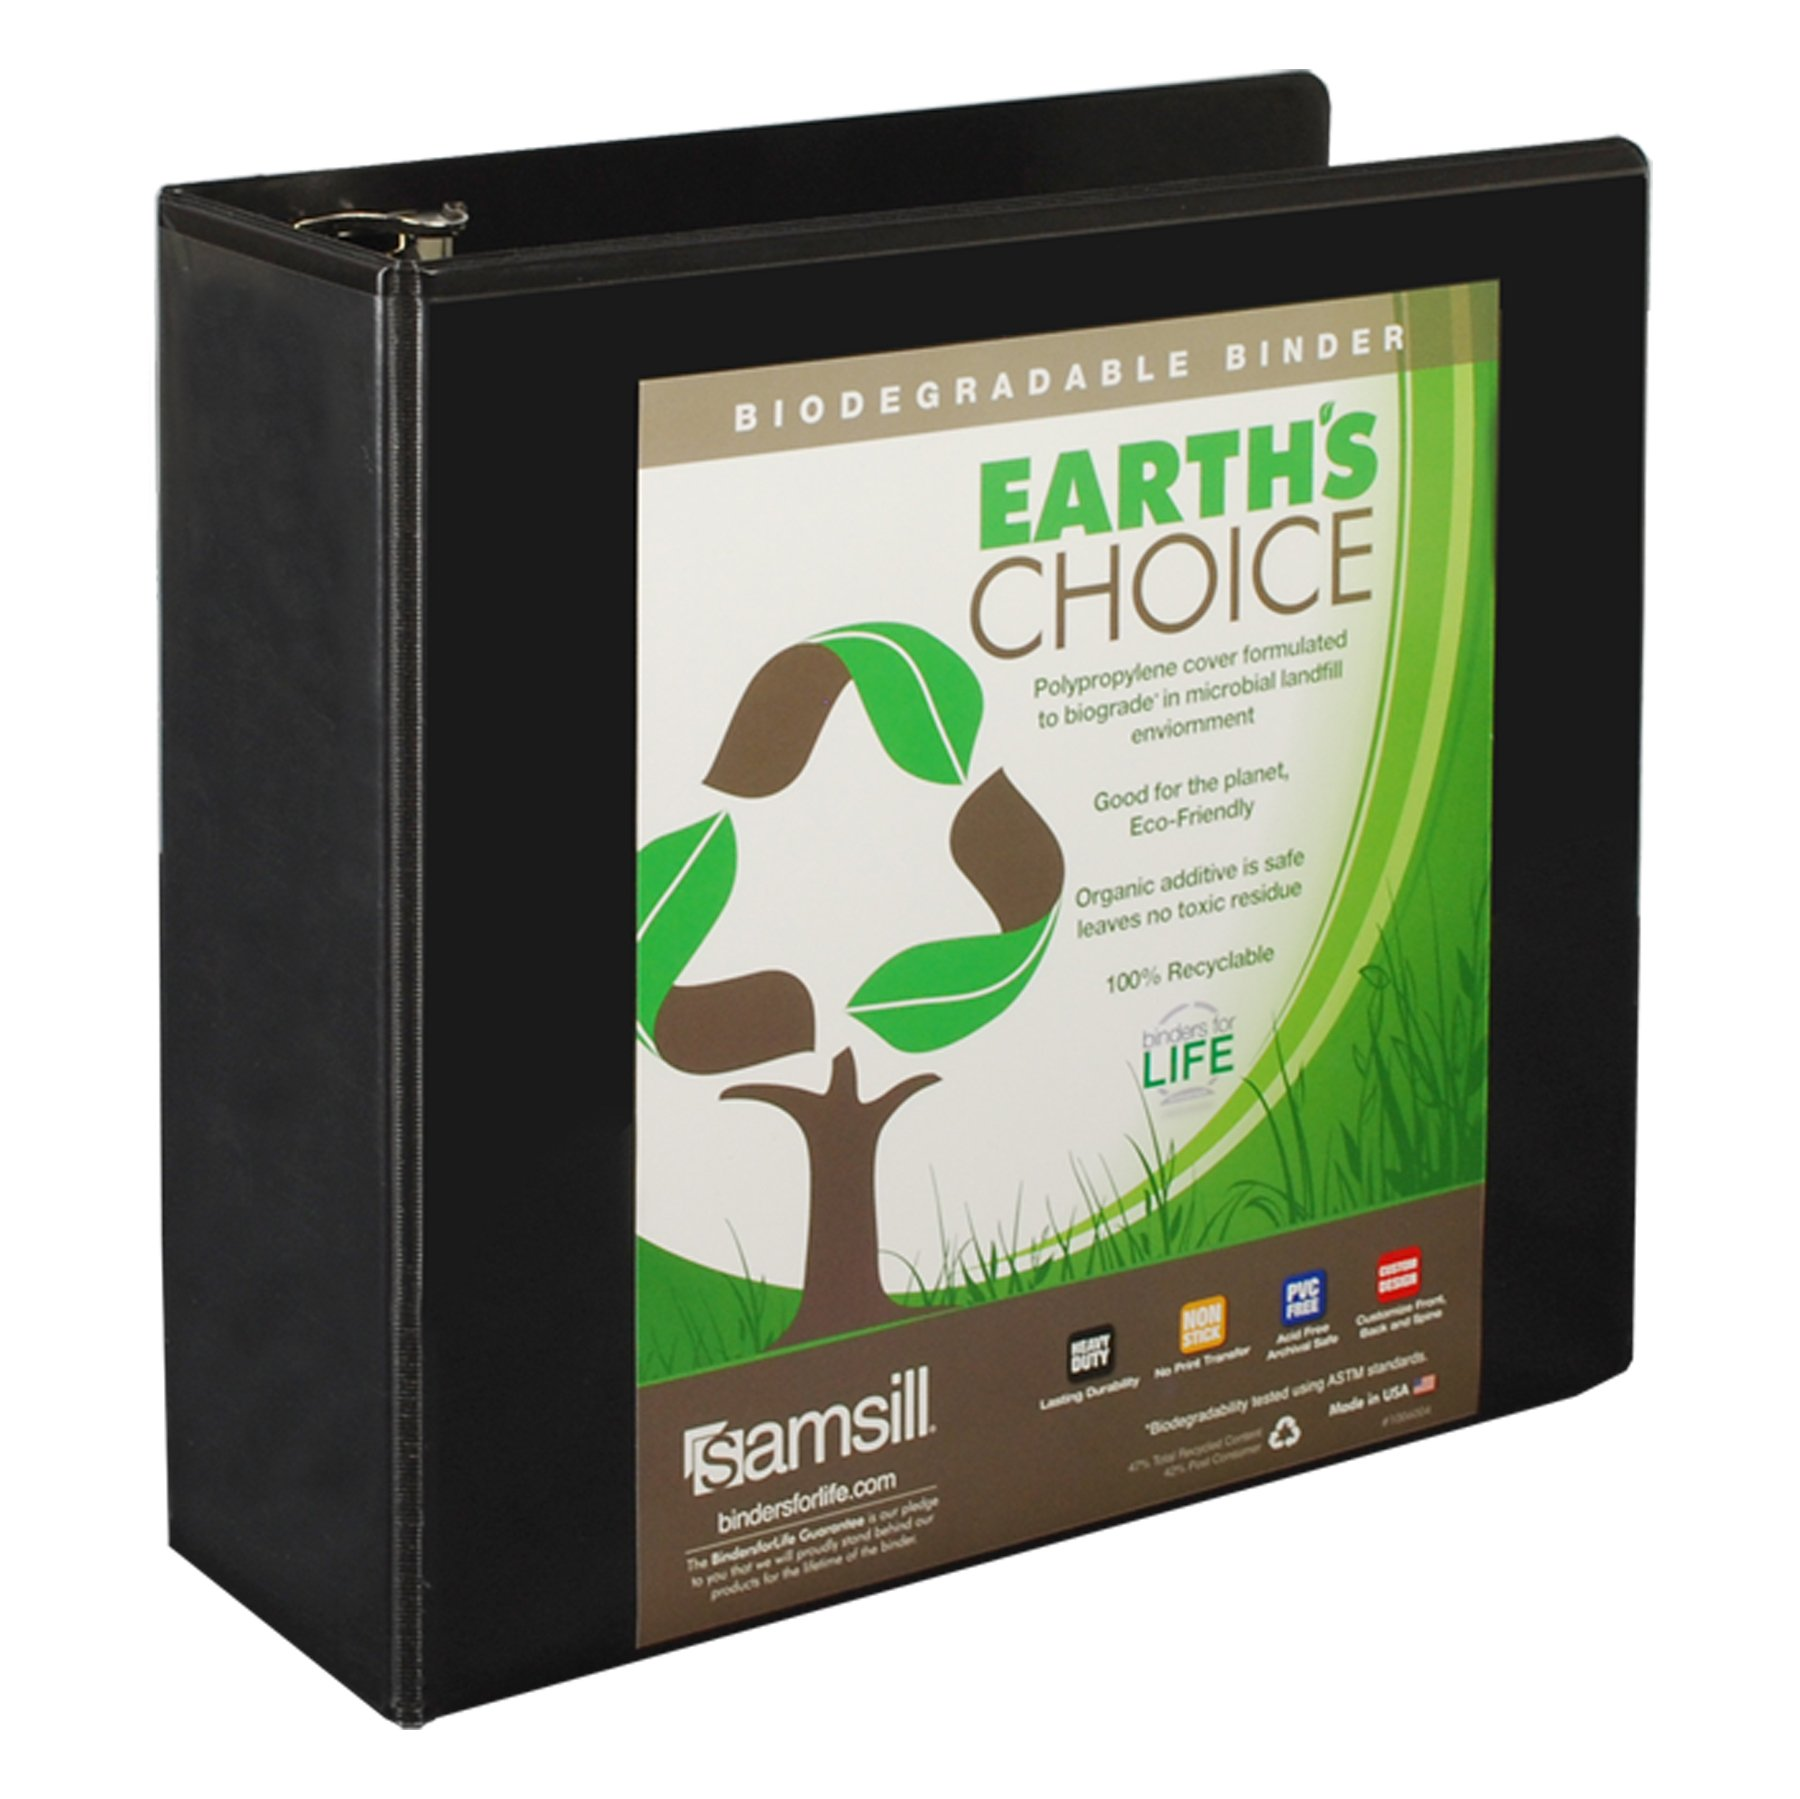 Samsill Earth's Choice Biobased View Binder, 3 Ring Binder, 4 Inch, Round Ring, Customizable, Black by Samsill (Image #1)